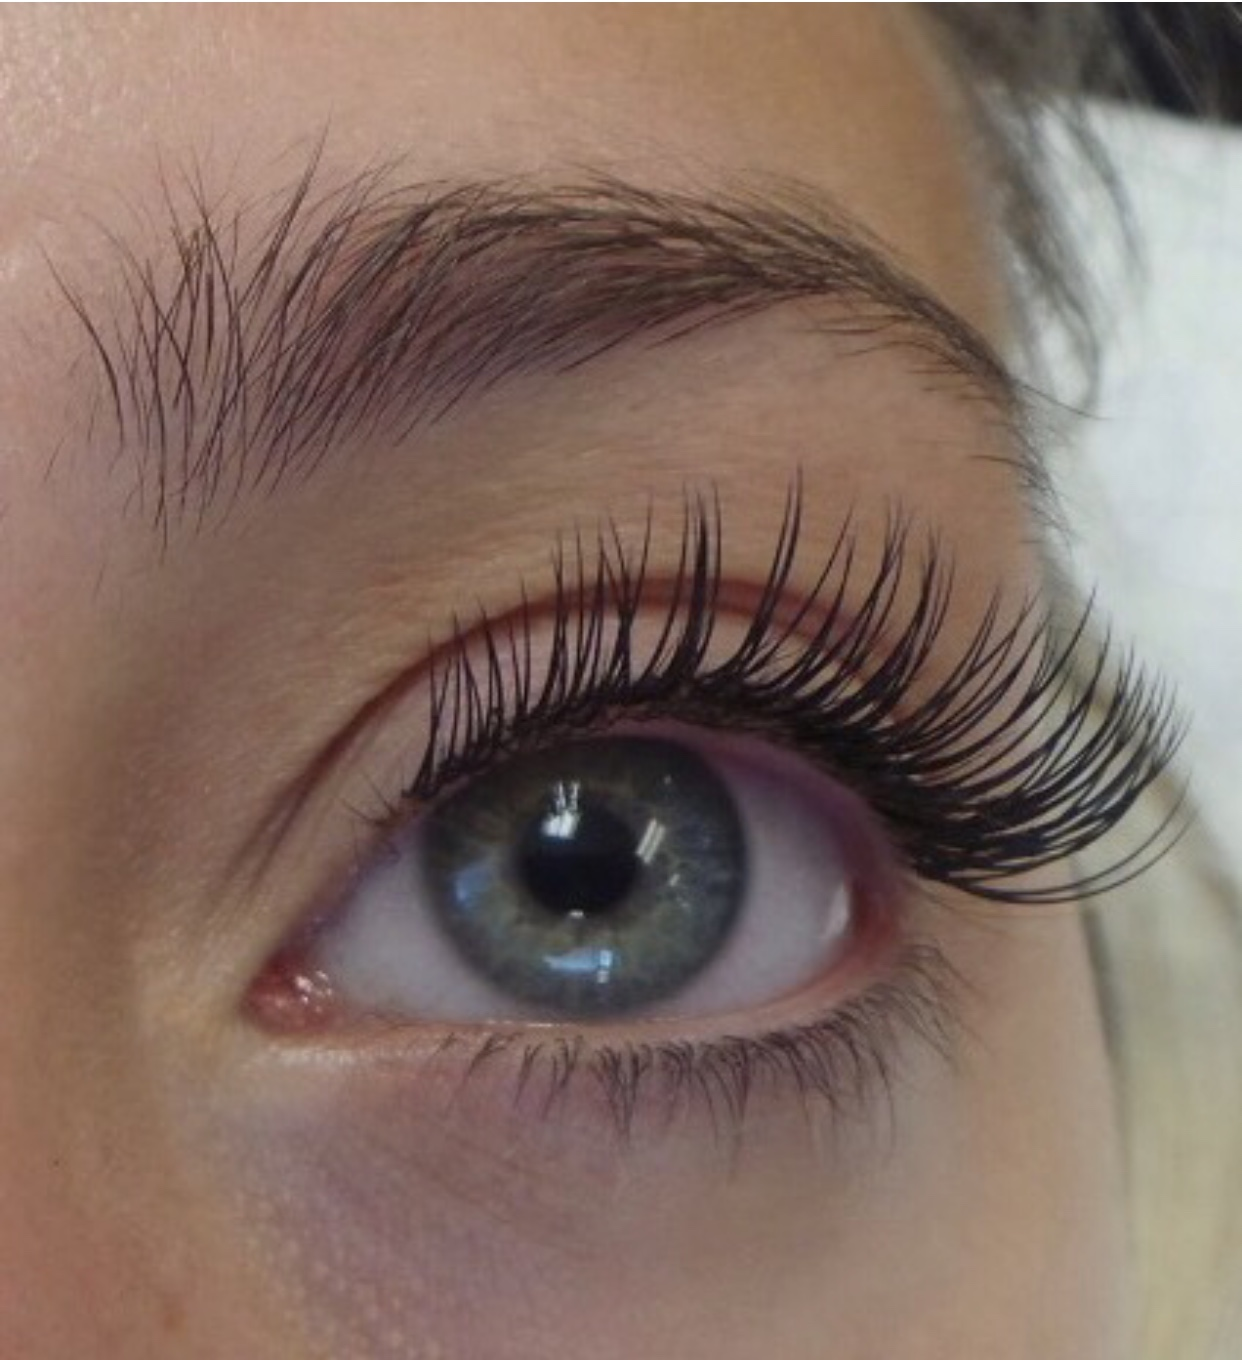 The after product of lash extensions in Raleigh, NC